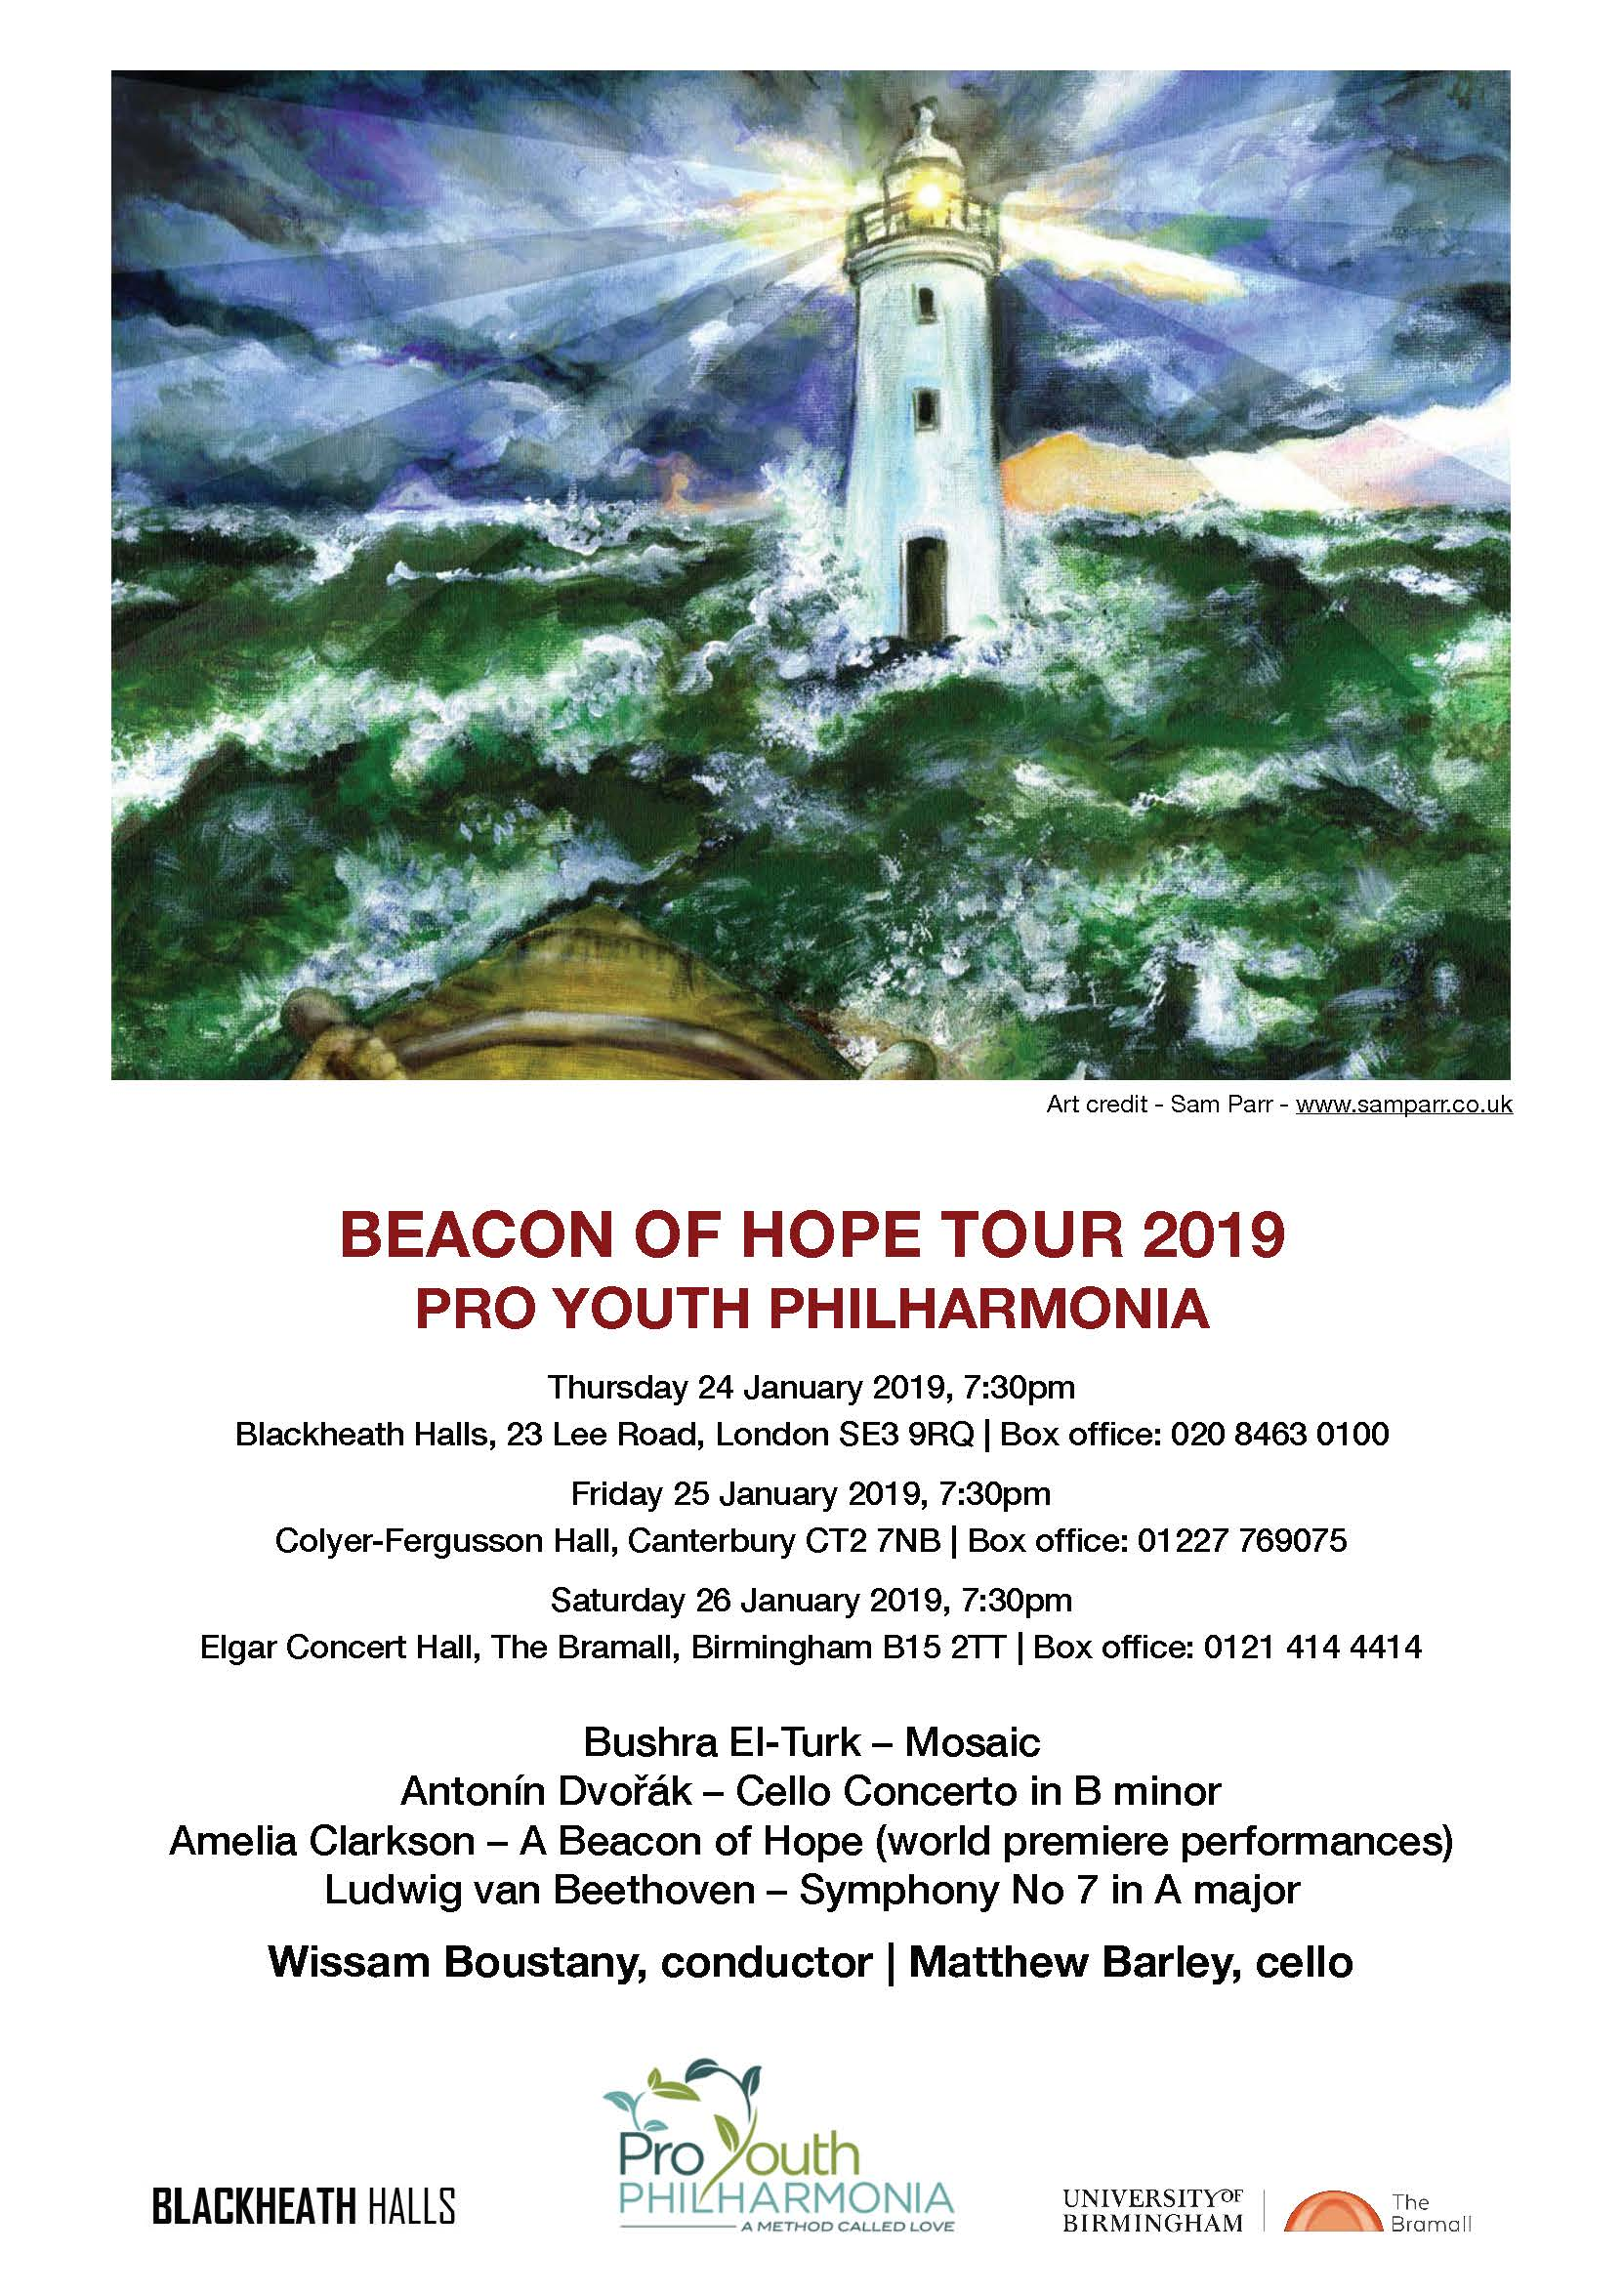 - Following our successful inaugural tour in April, PYP embark on a thrilling tour early in the New Year.Award-winning composer Bushra El-Turk's colourful Mosaic will be presented alongside a world premiere performance of Amelia Clarkson's A Beacon of Hope, written especially for our 2019 tour. The orchestra will be joined by renowned cellist Matthew Barley in a performance of Dvořák's Cello Concerto in B minor, with the concert being brought to a rousing conclusion by Beethoven's effervescent and triumphant Symphony No. 7in A major.